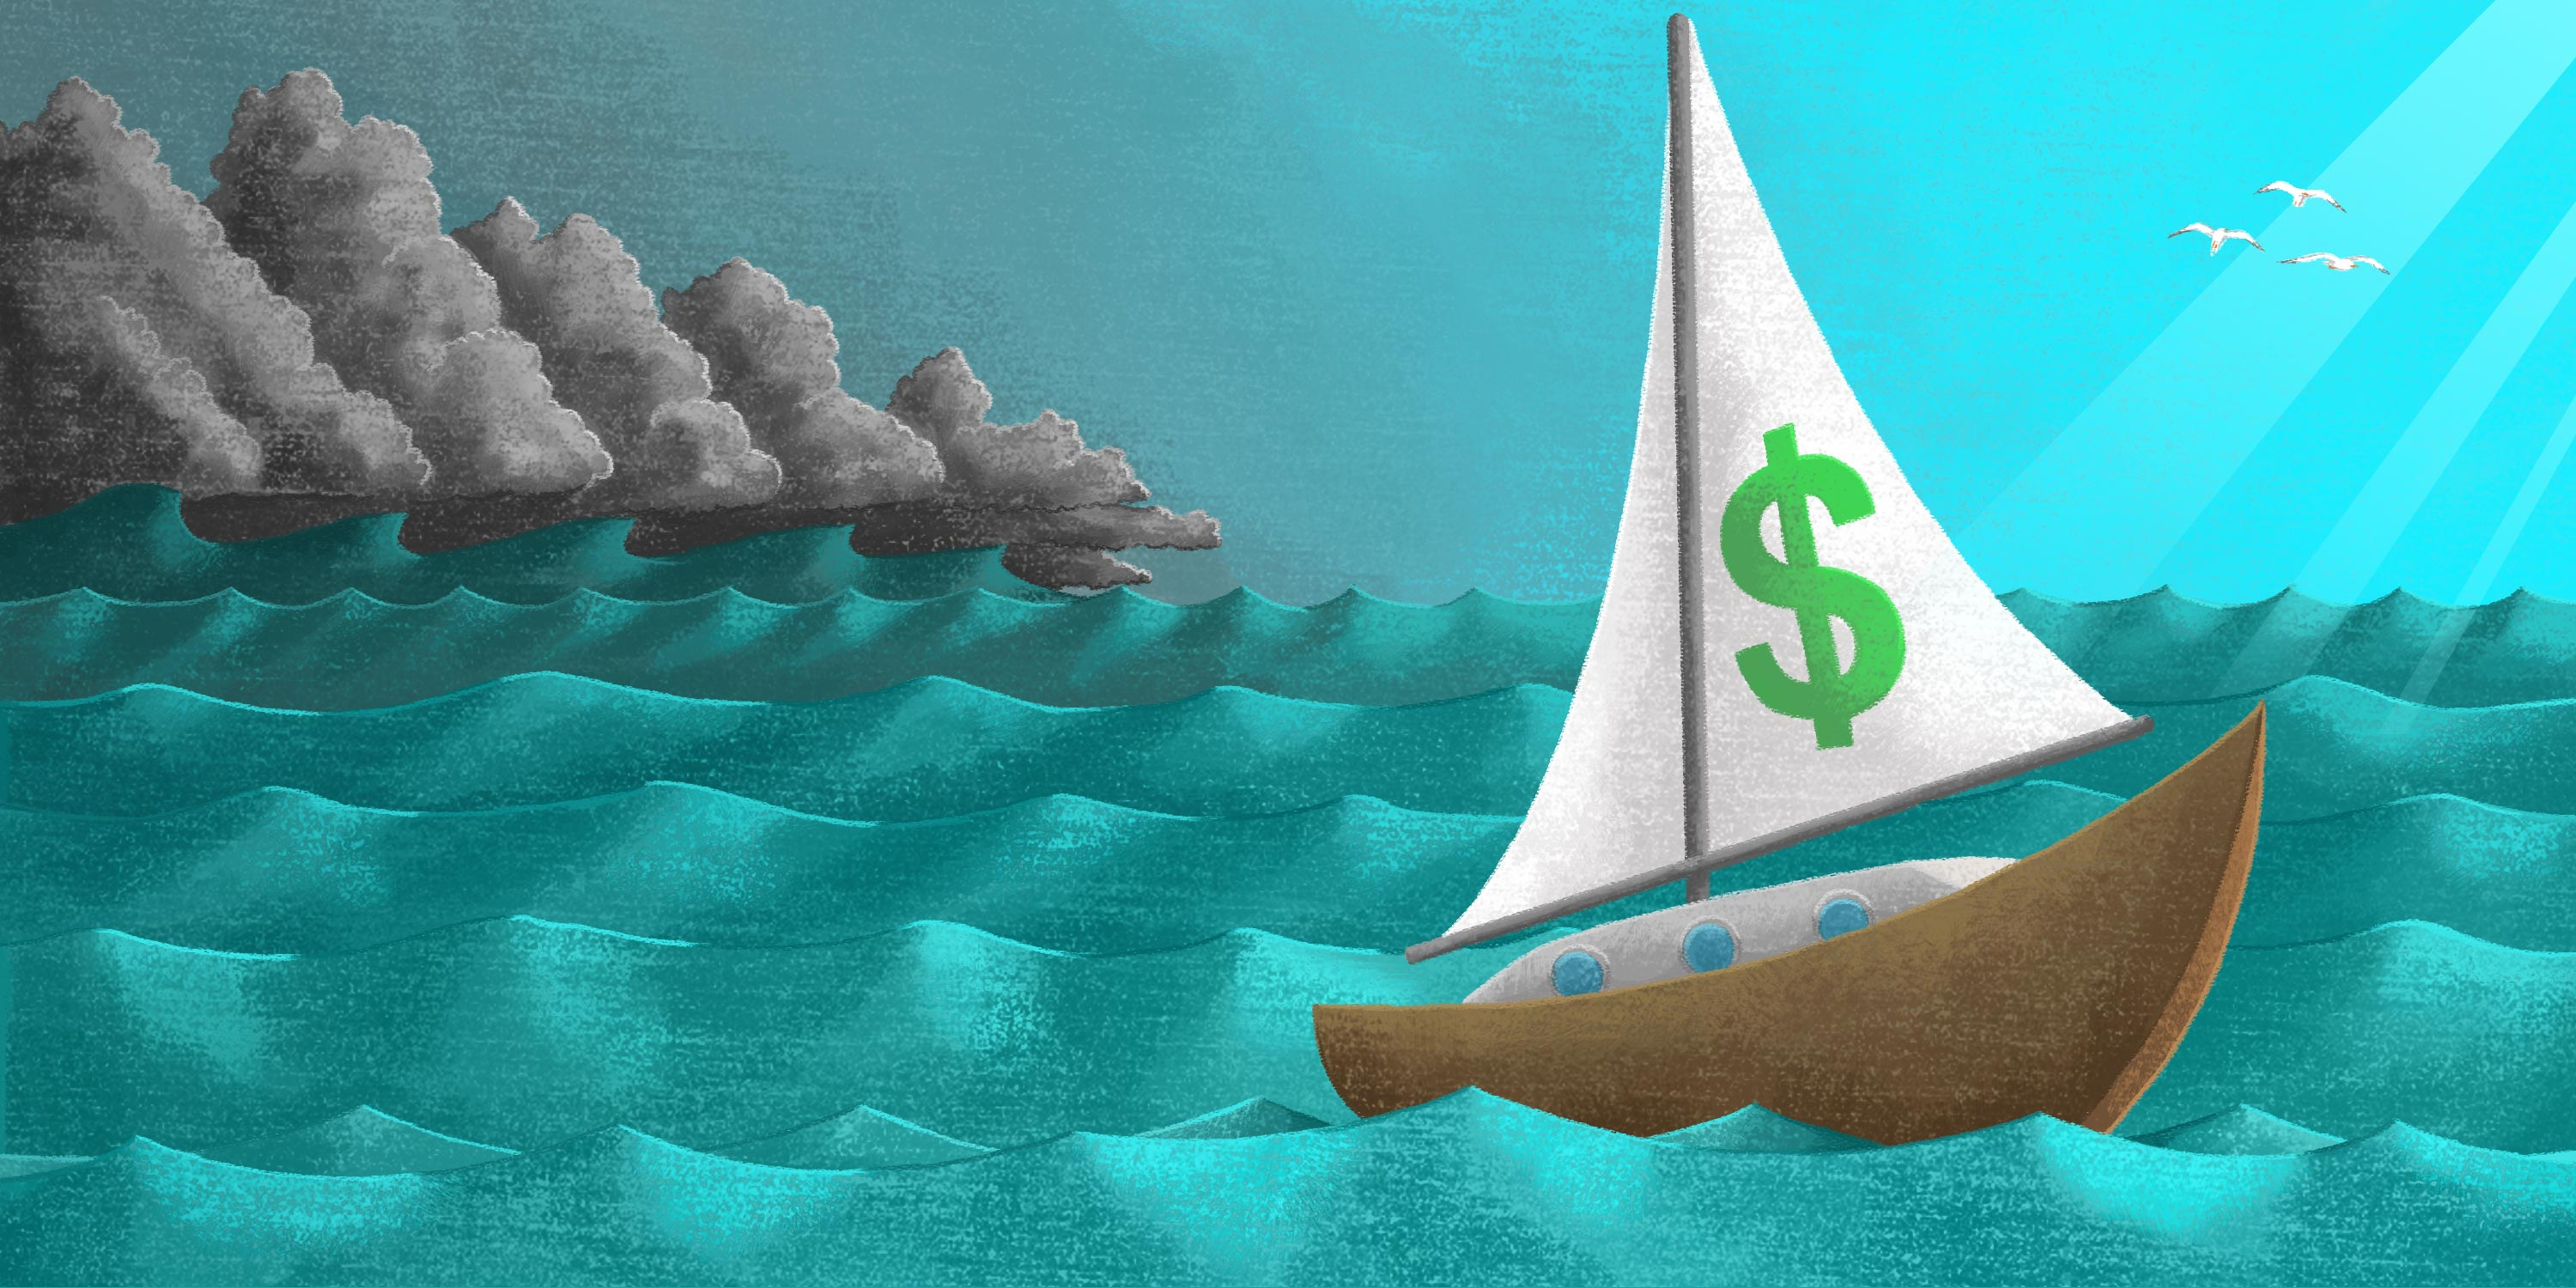 sailboat on the ocean in the calm before the storm - the time to automate supplier payments